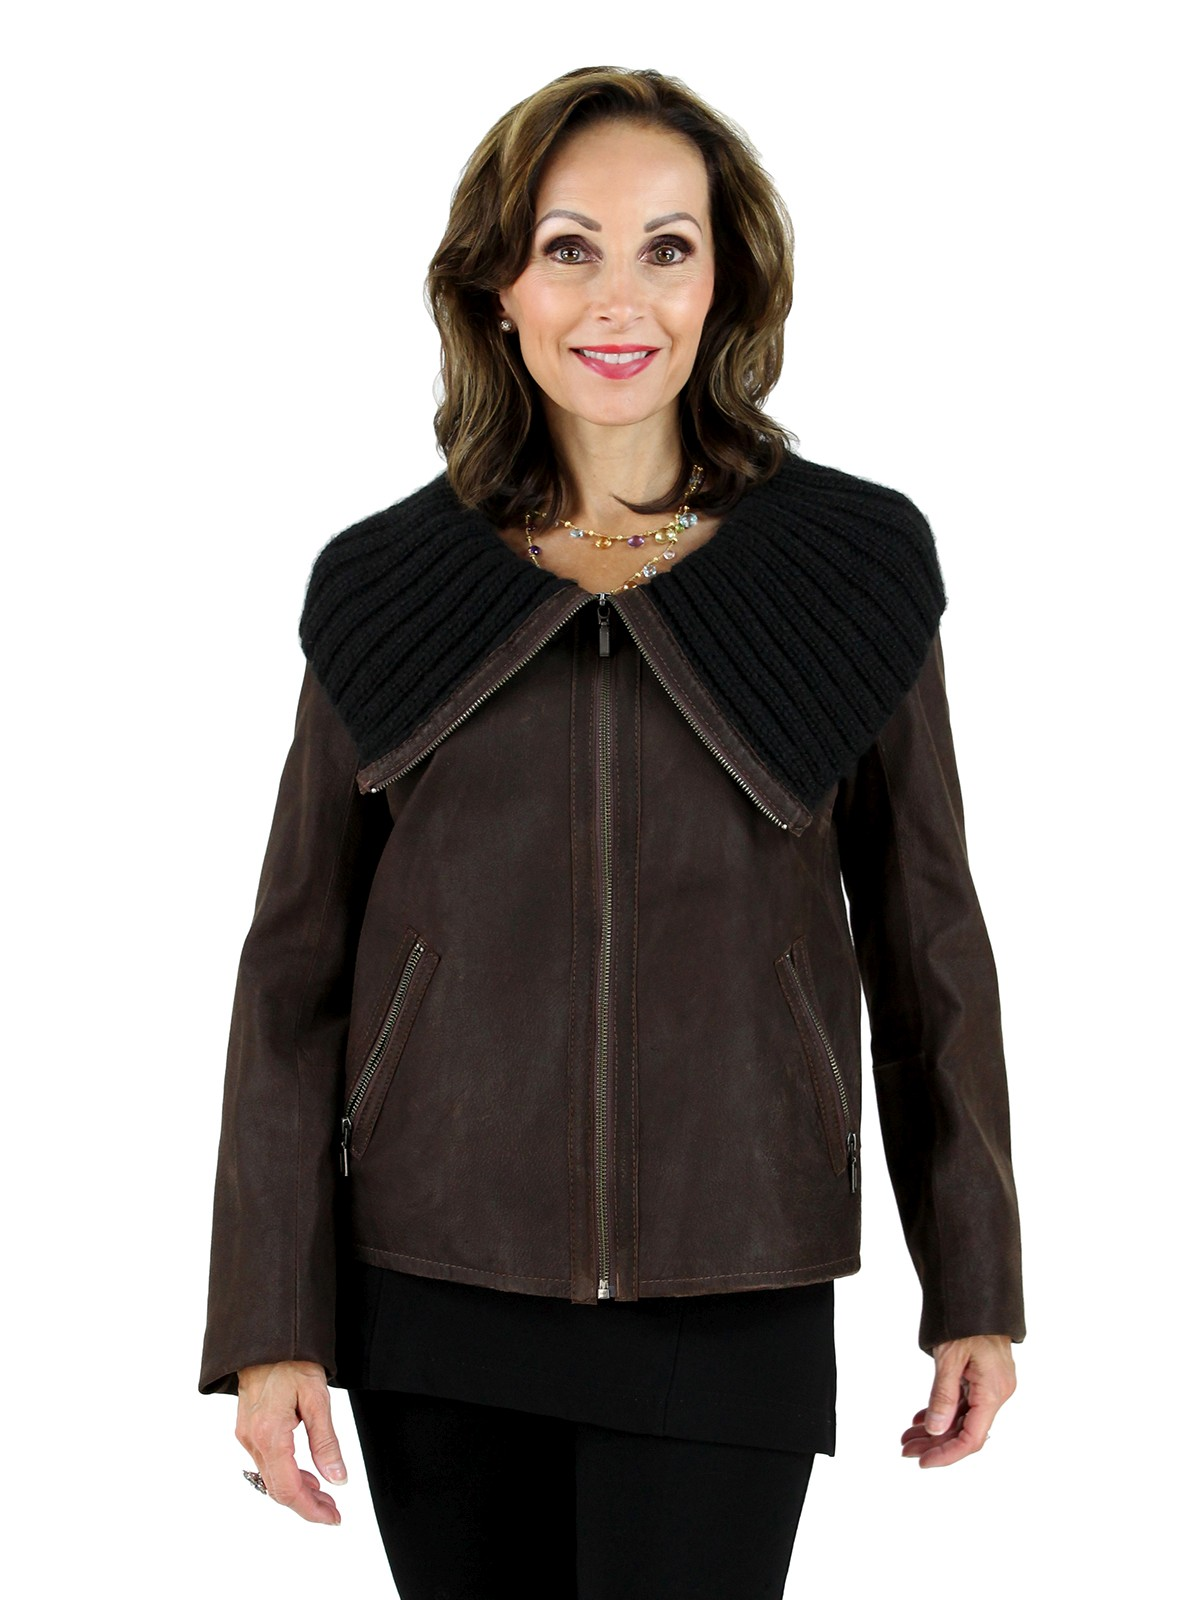 Woman's Dark Chocolate Brown Leather Jacket